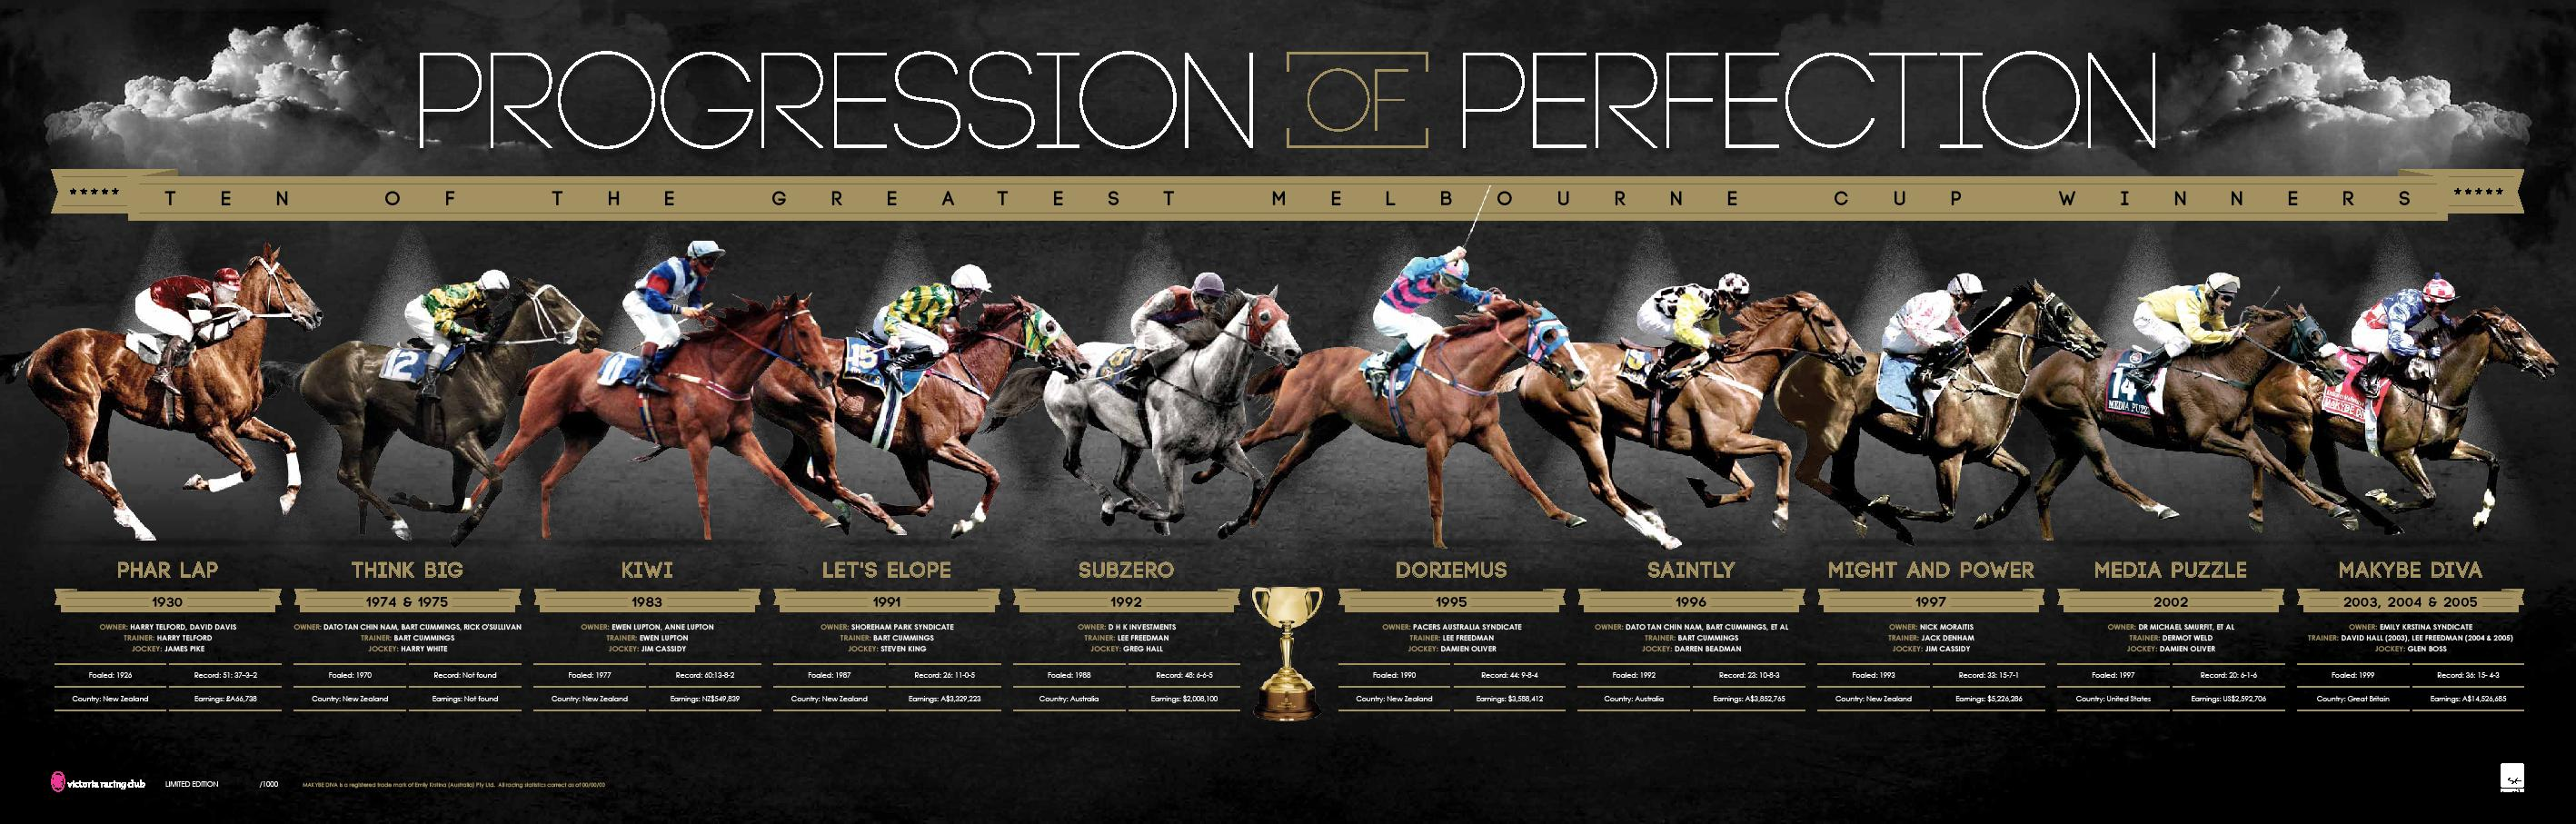 Progression of Perfection - Melbourne Cup Edition Sportsprint, Framed